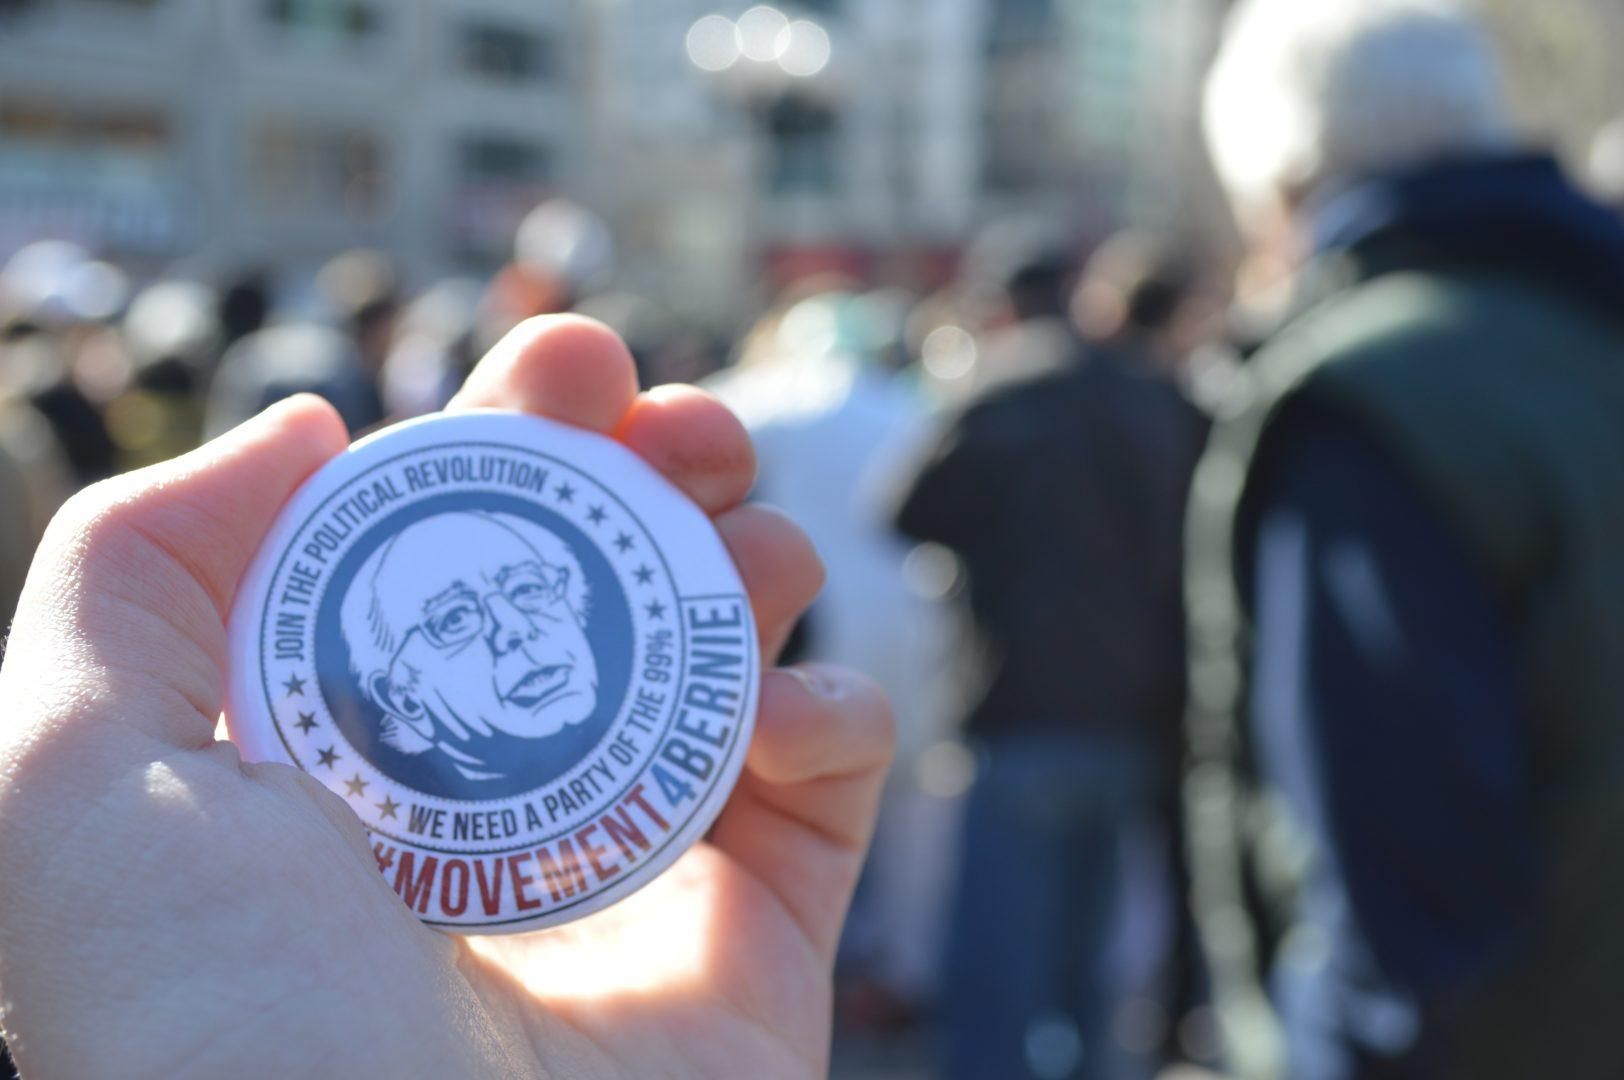 Fordham4Bernie Brings Students to March for Bernie Sanders